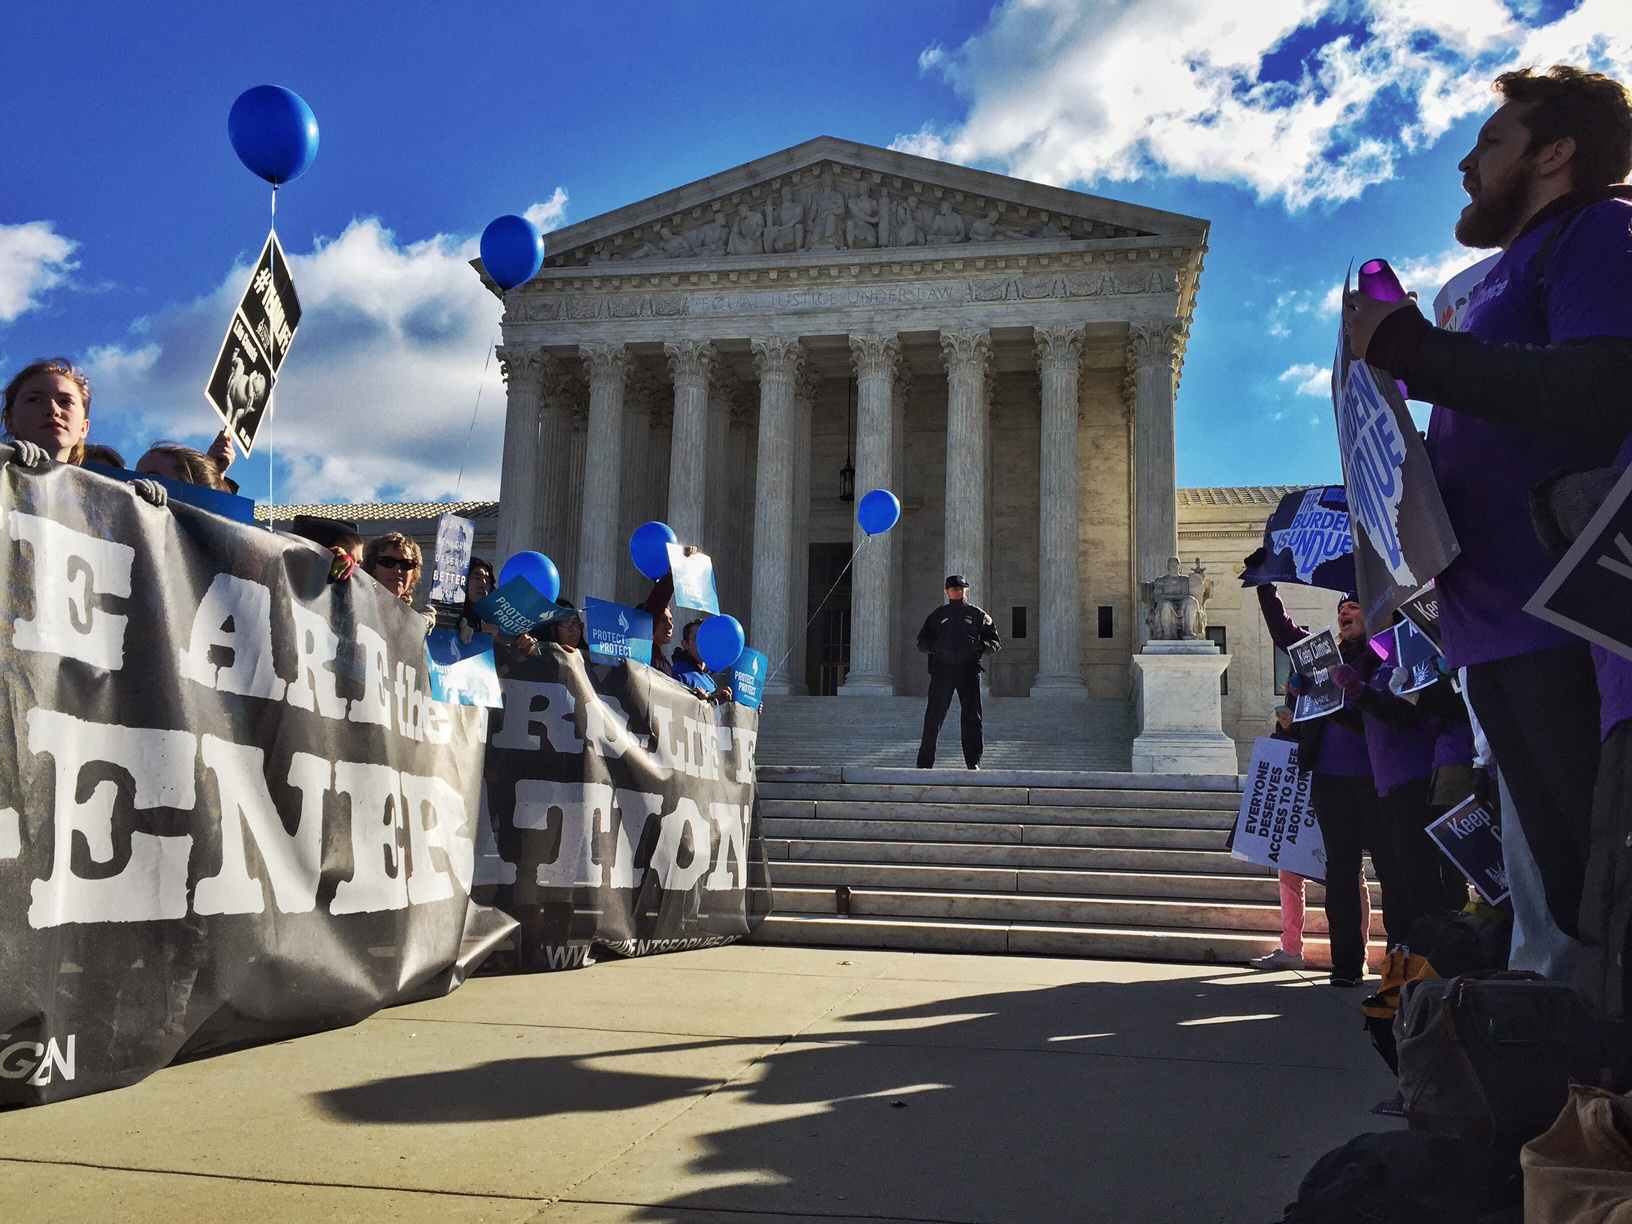 Pro-choice advocates, right, face off against anti-abortion supporters during a rally at the Supreme Court Wednesday March 2, 2016, as Justices hear a case concerning a Texas law regulating abortion clinics and providers. (Photo by Bill O'Leary/The Washington Post via Getty Images)